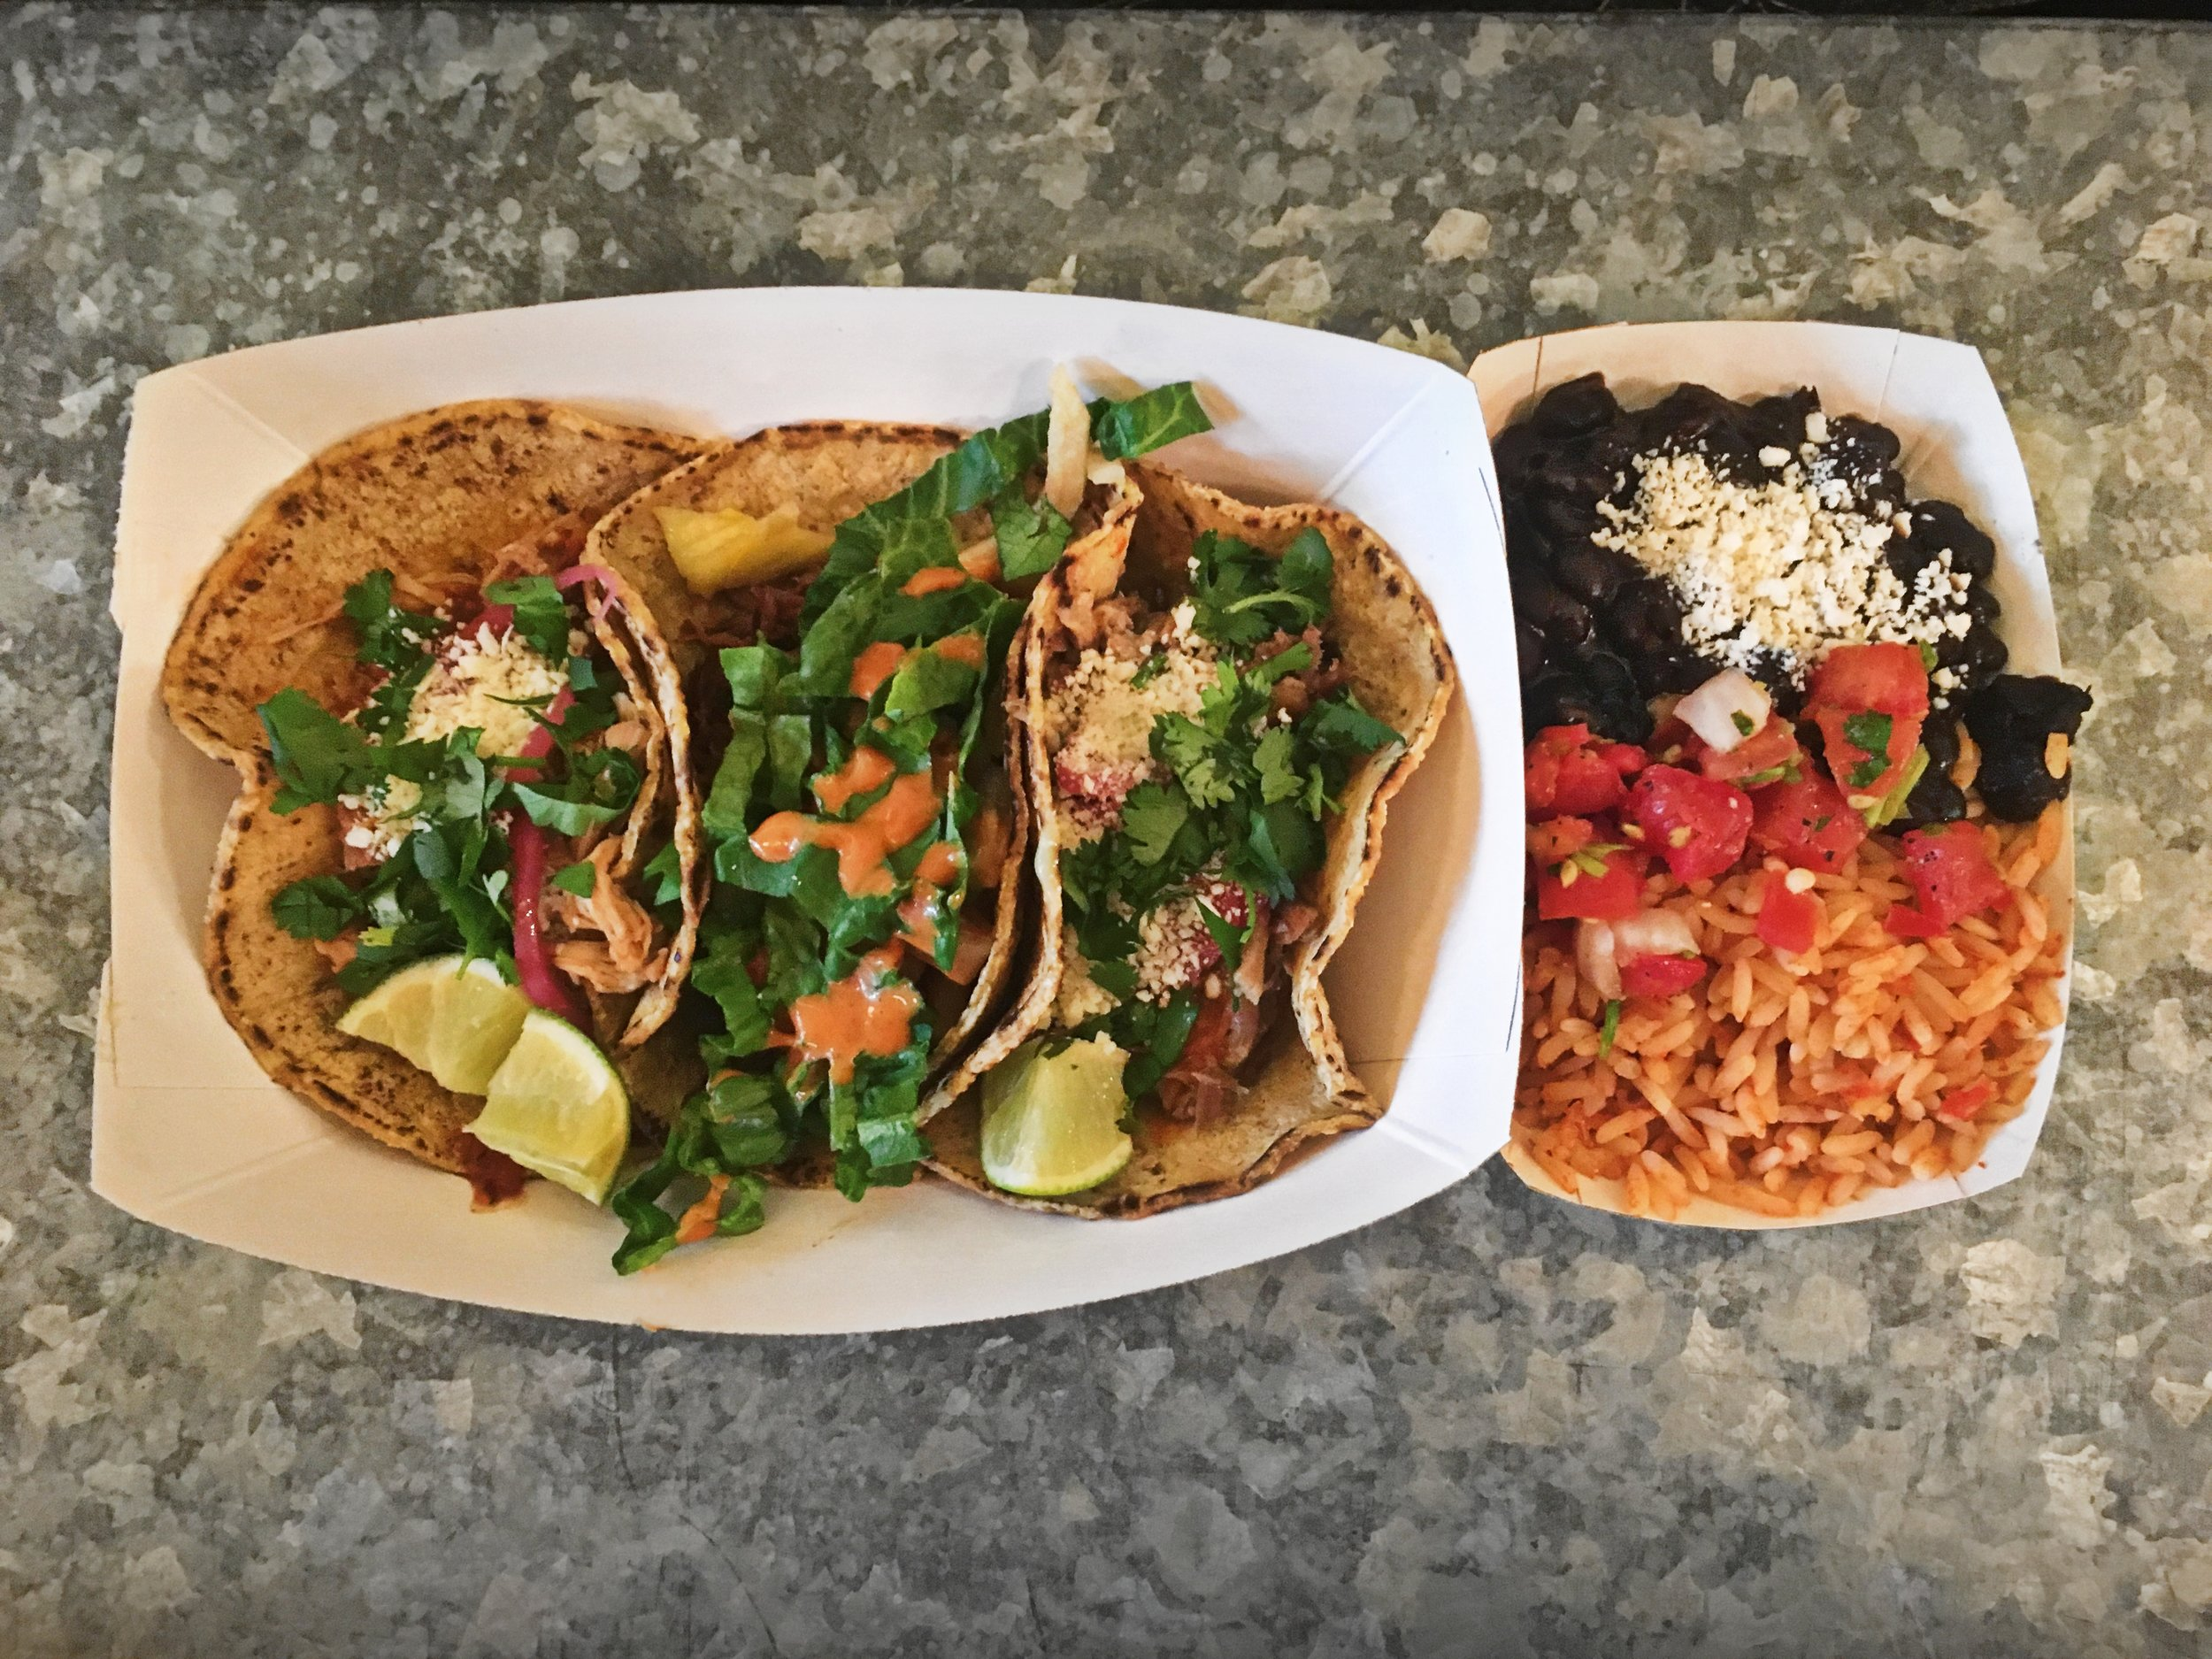 Taco combination with rice and beans